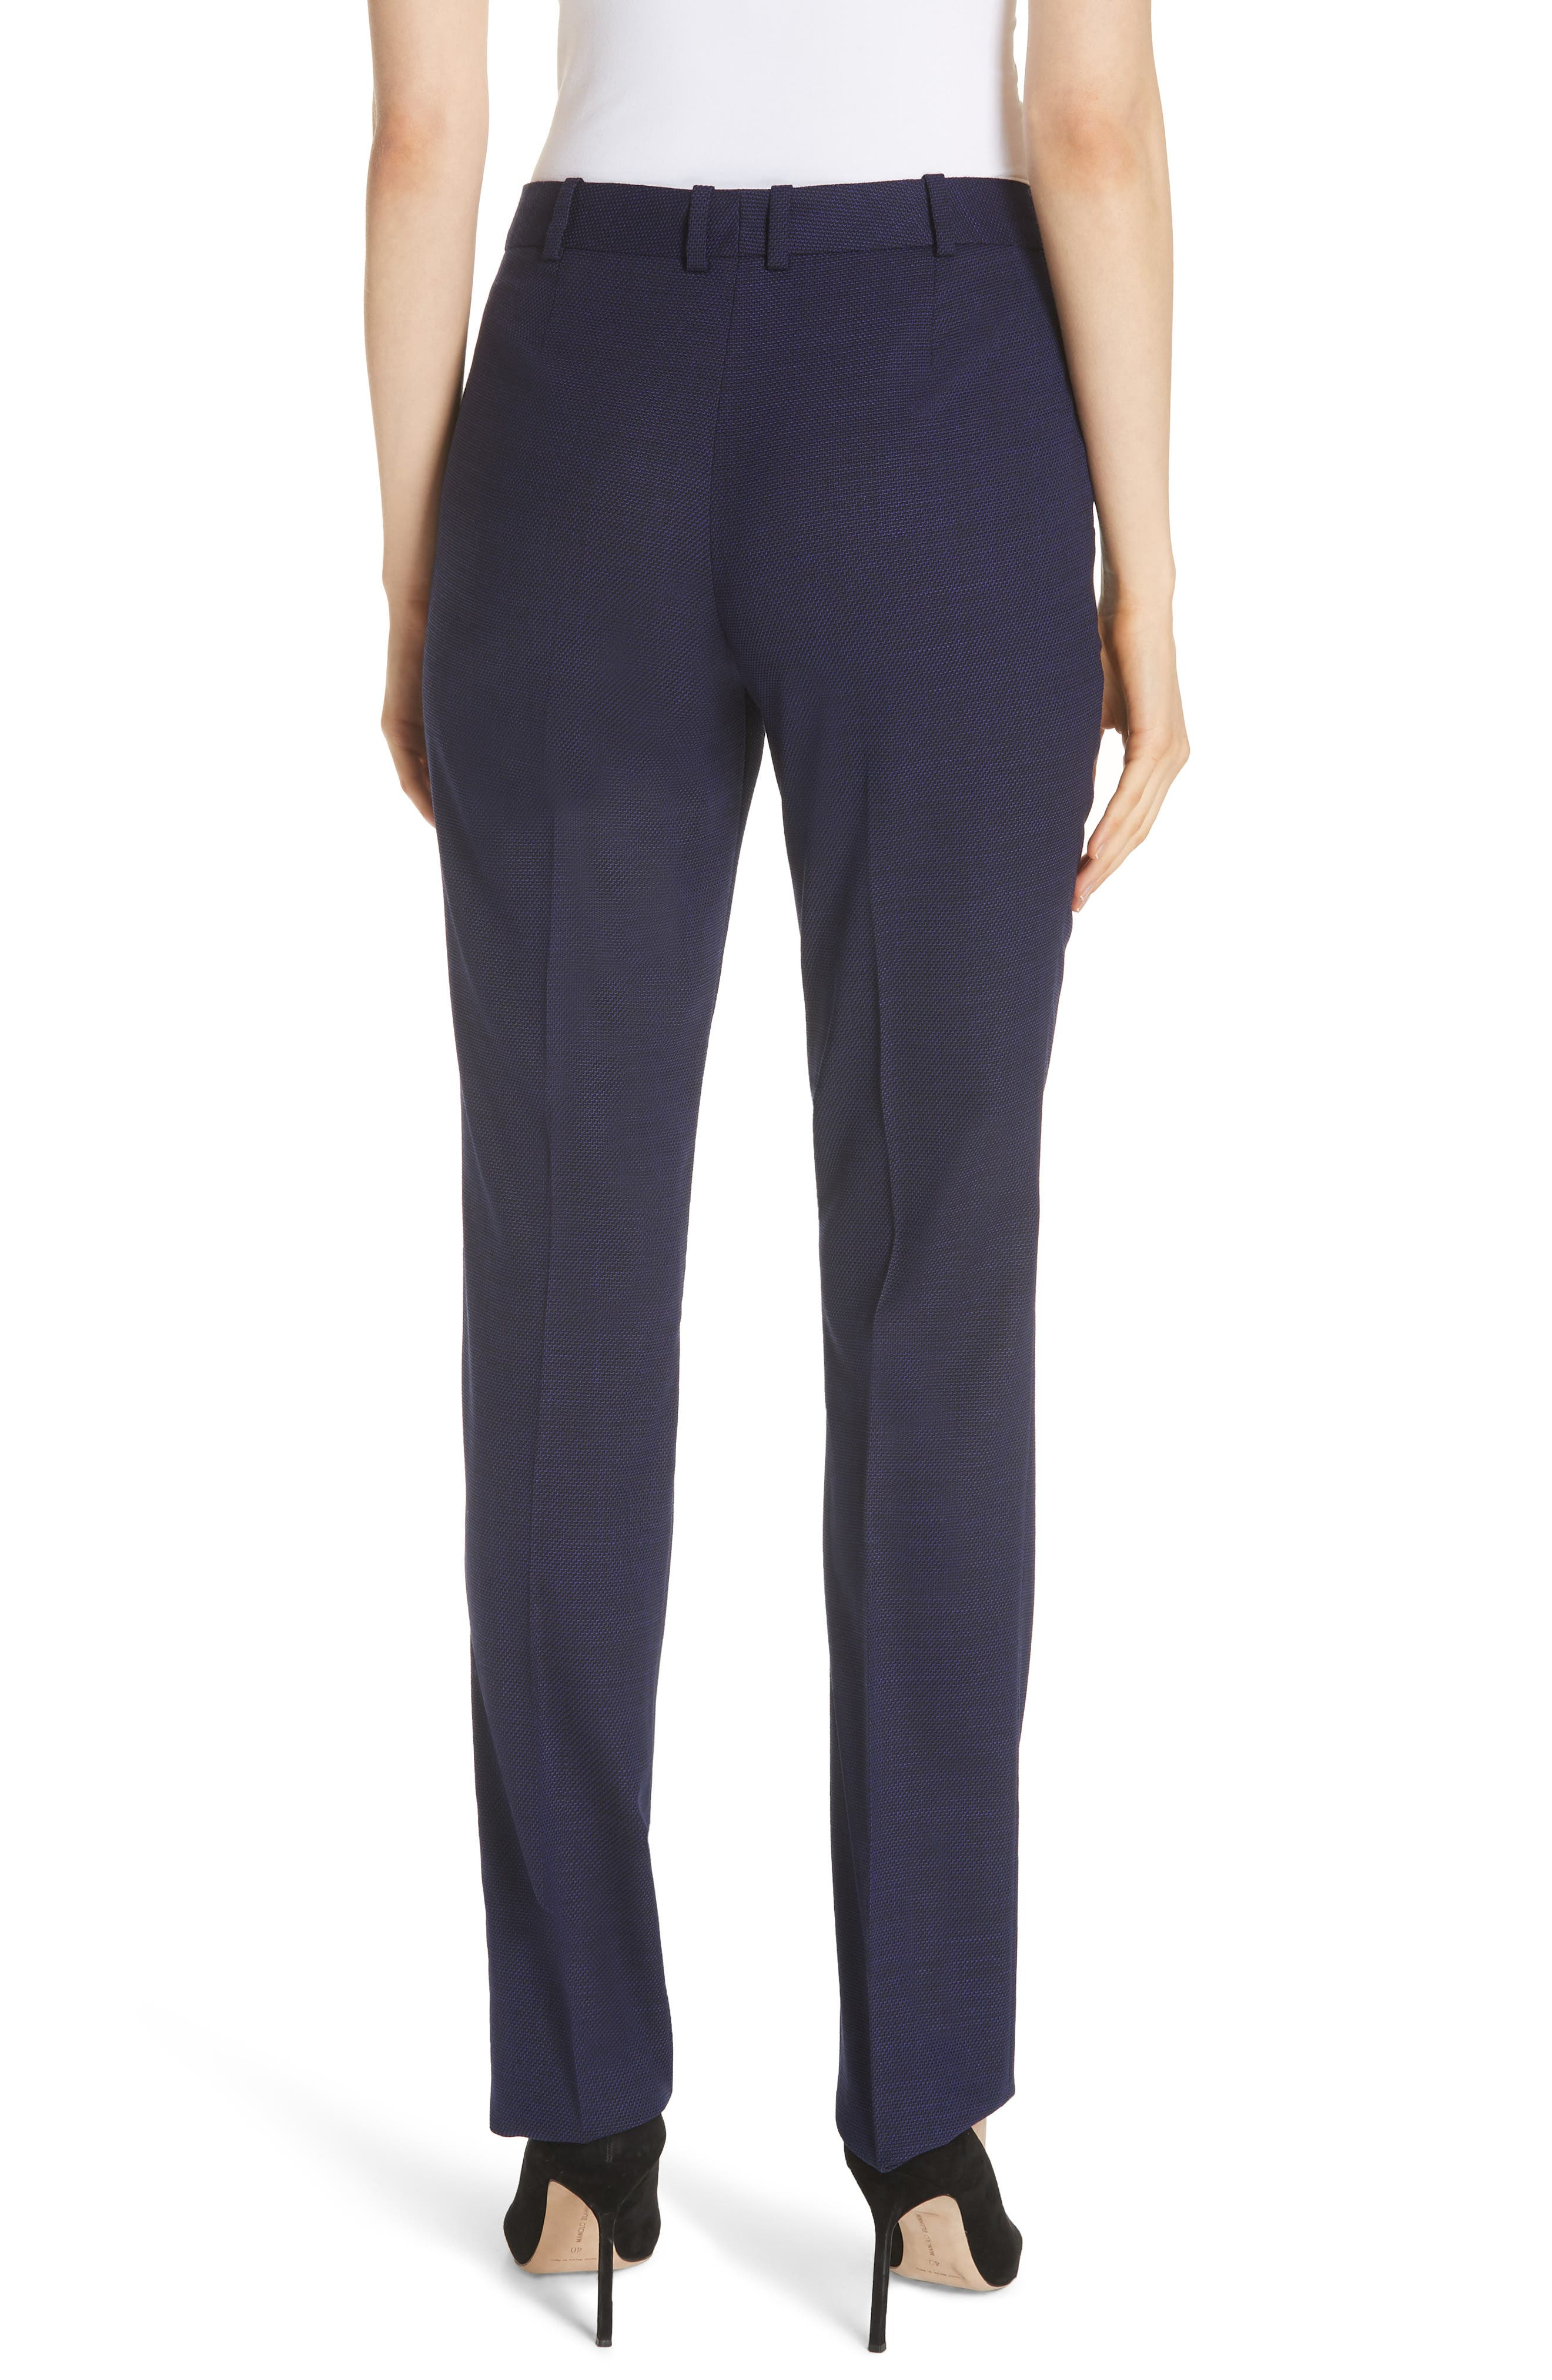 Titana Straight Leg Suit Pants,                             Alternate thumbnail 2, color,                             DEEP LILAC FANTASY